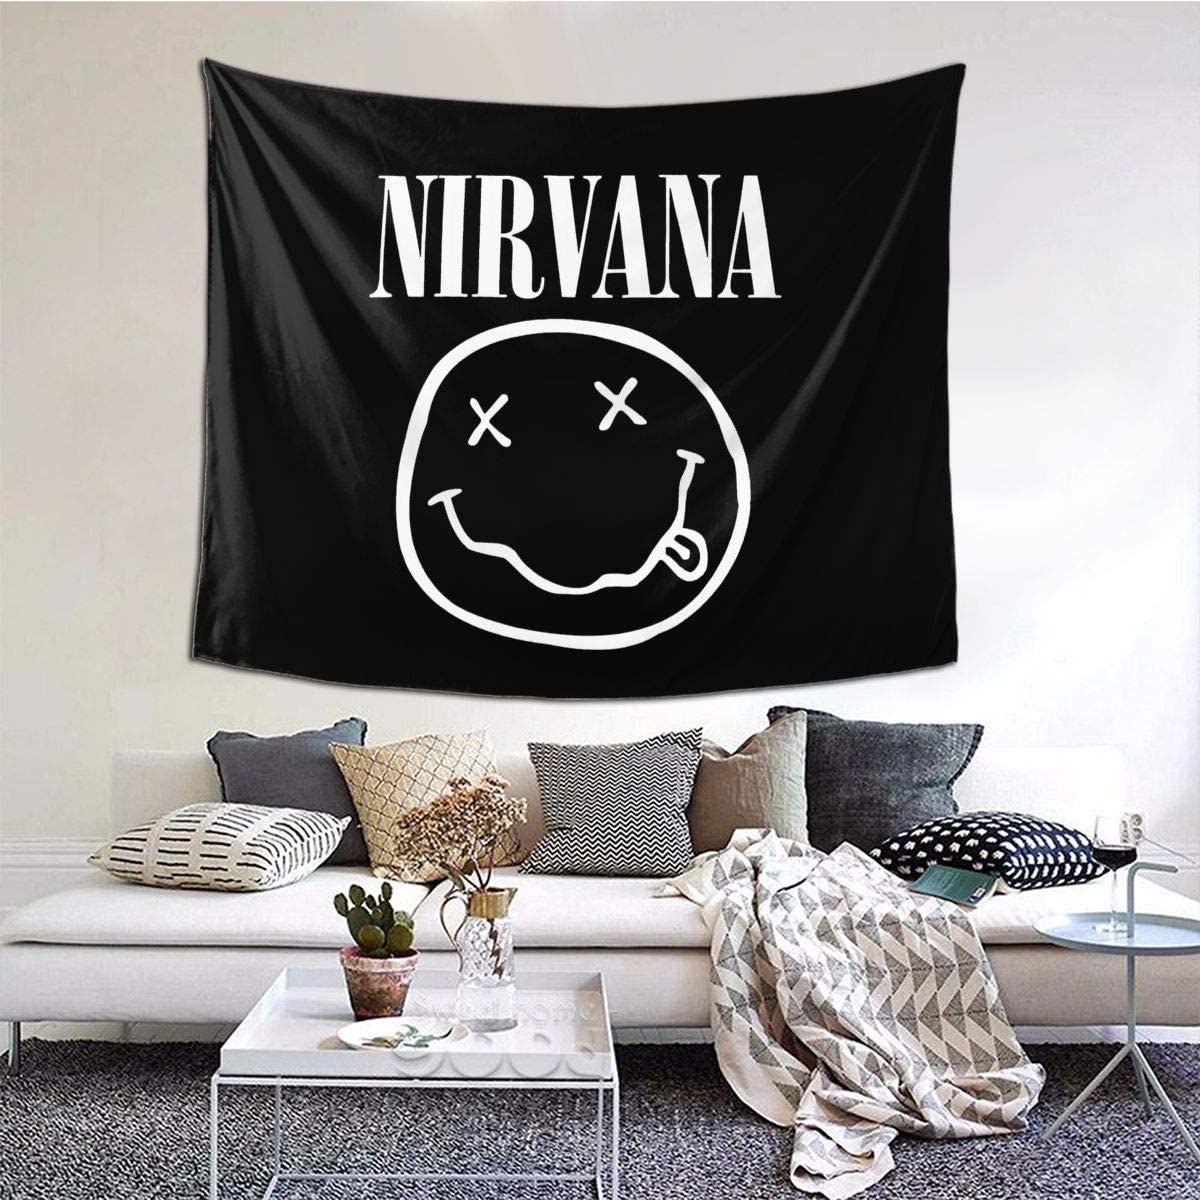 Nirvana Tapestry, Wall Hanging Tapestries Decor Blanket Wall Art For Living Room Bedroom Home 60 X51Inch